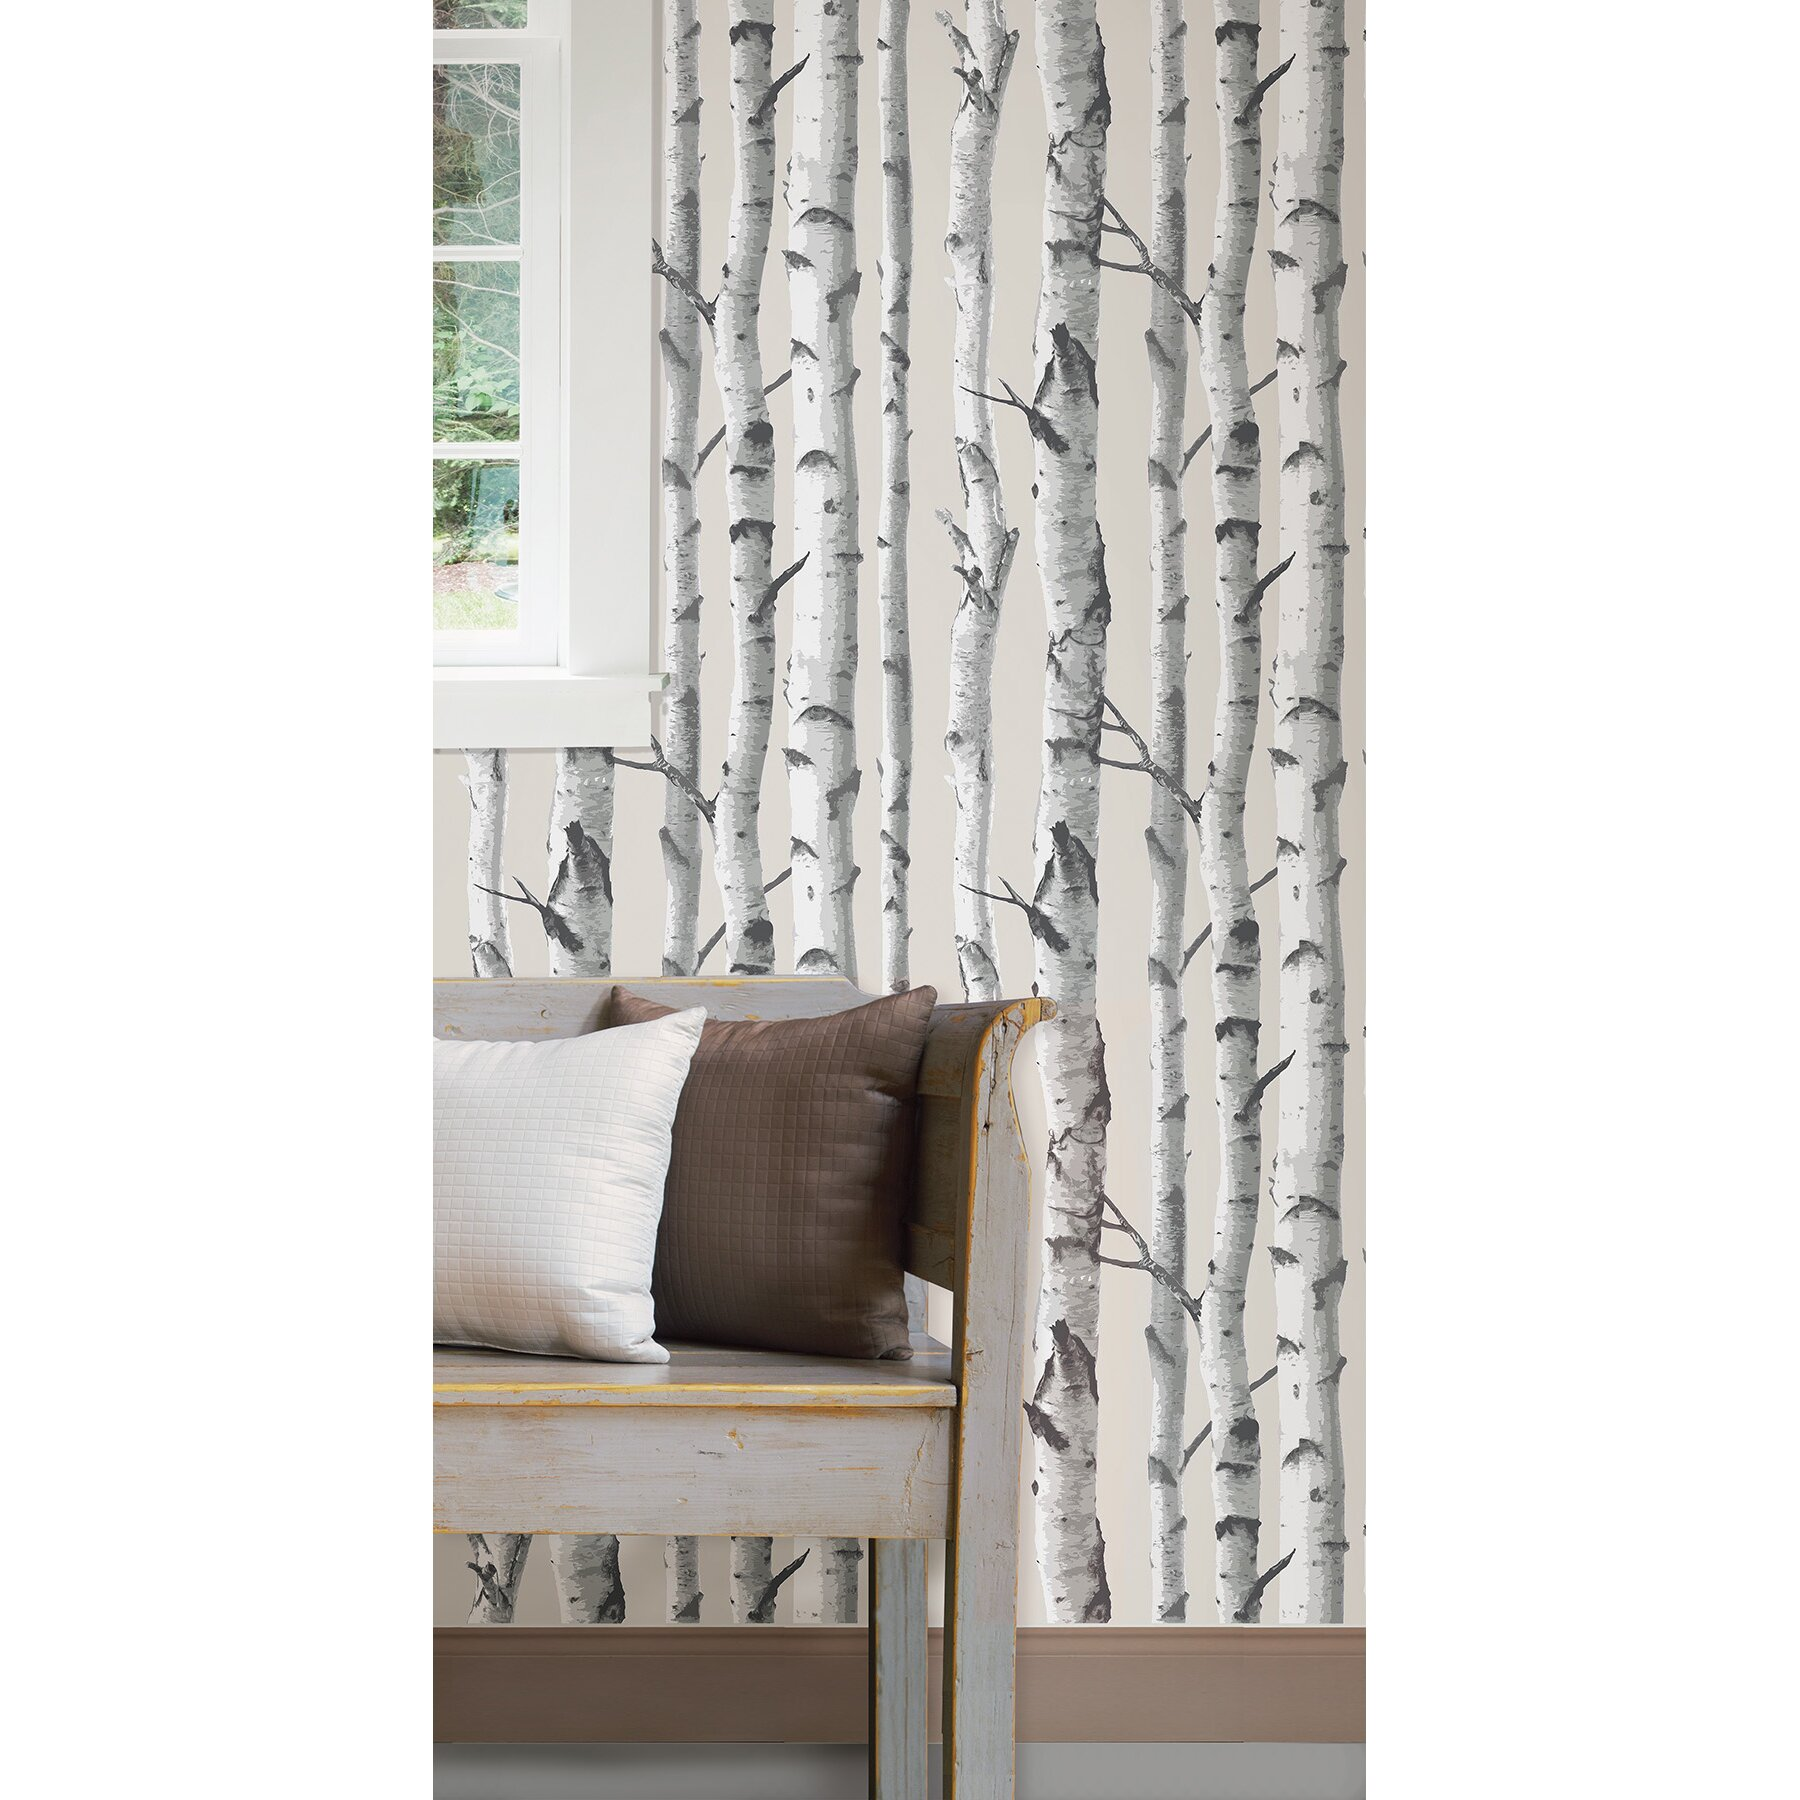 Wallpops birch tree peel and stick wallpaper reviews - Birch tree wallpaper peel and stick ...